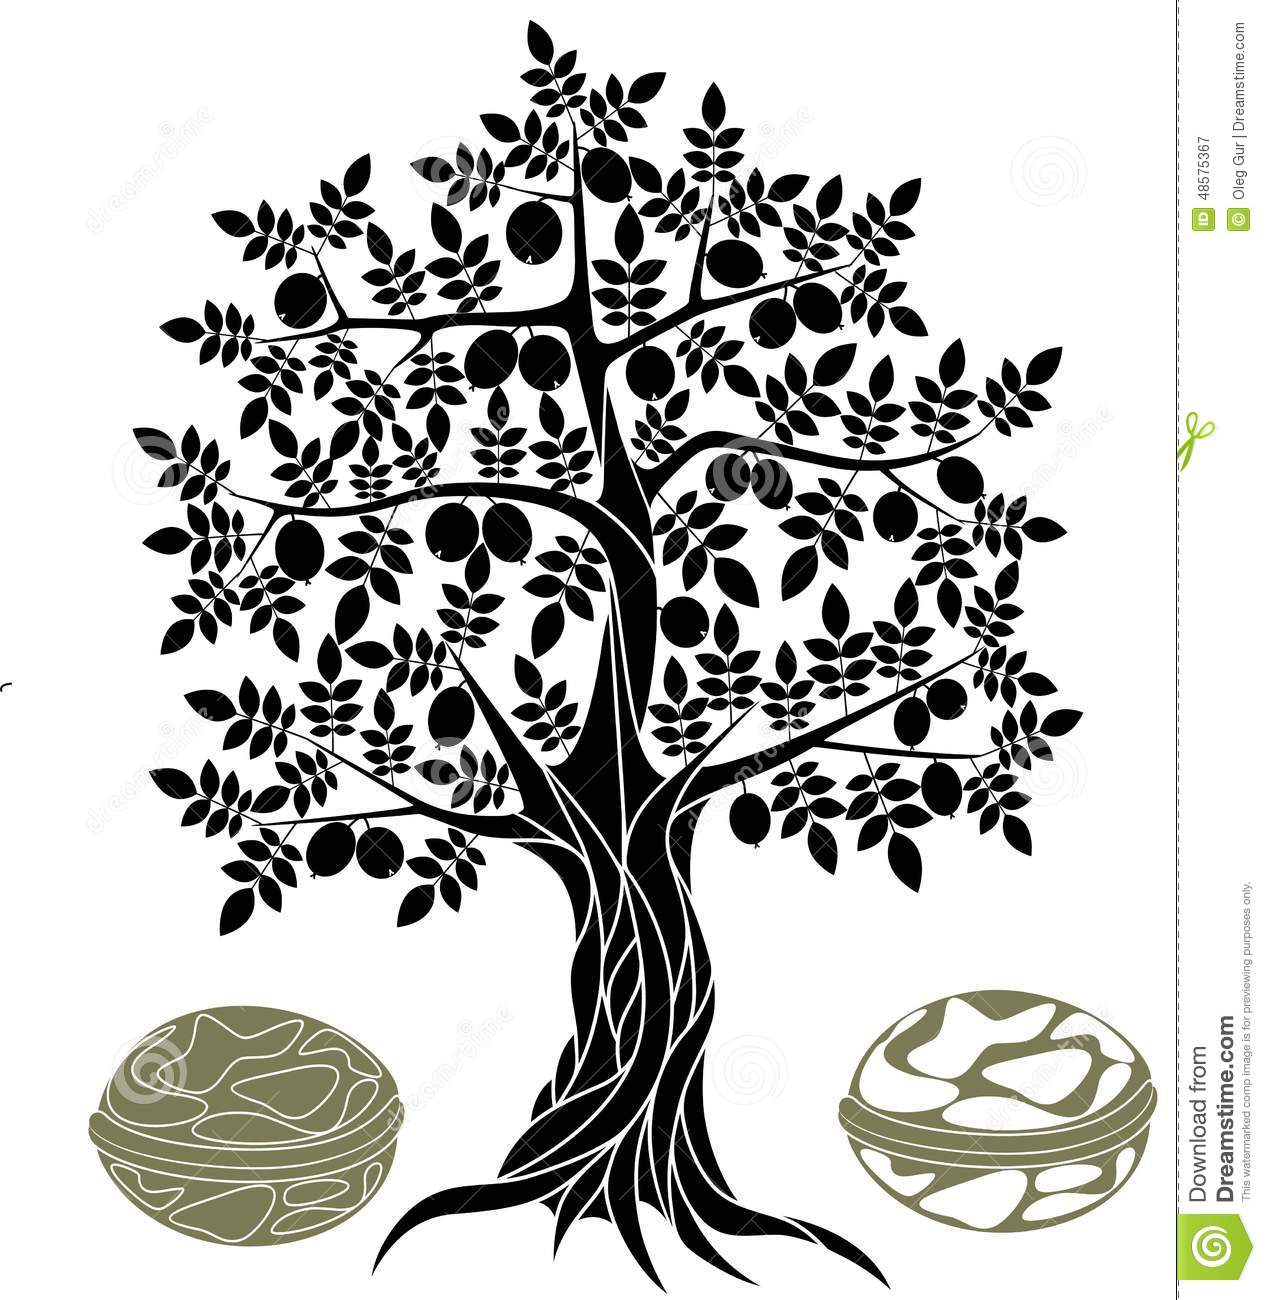 Walnut tree clipart clipart png black and white stock Walnut tree clipart clipart - ClipartFest png black and white stock